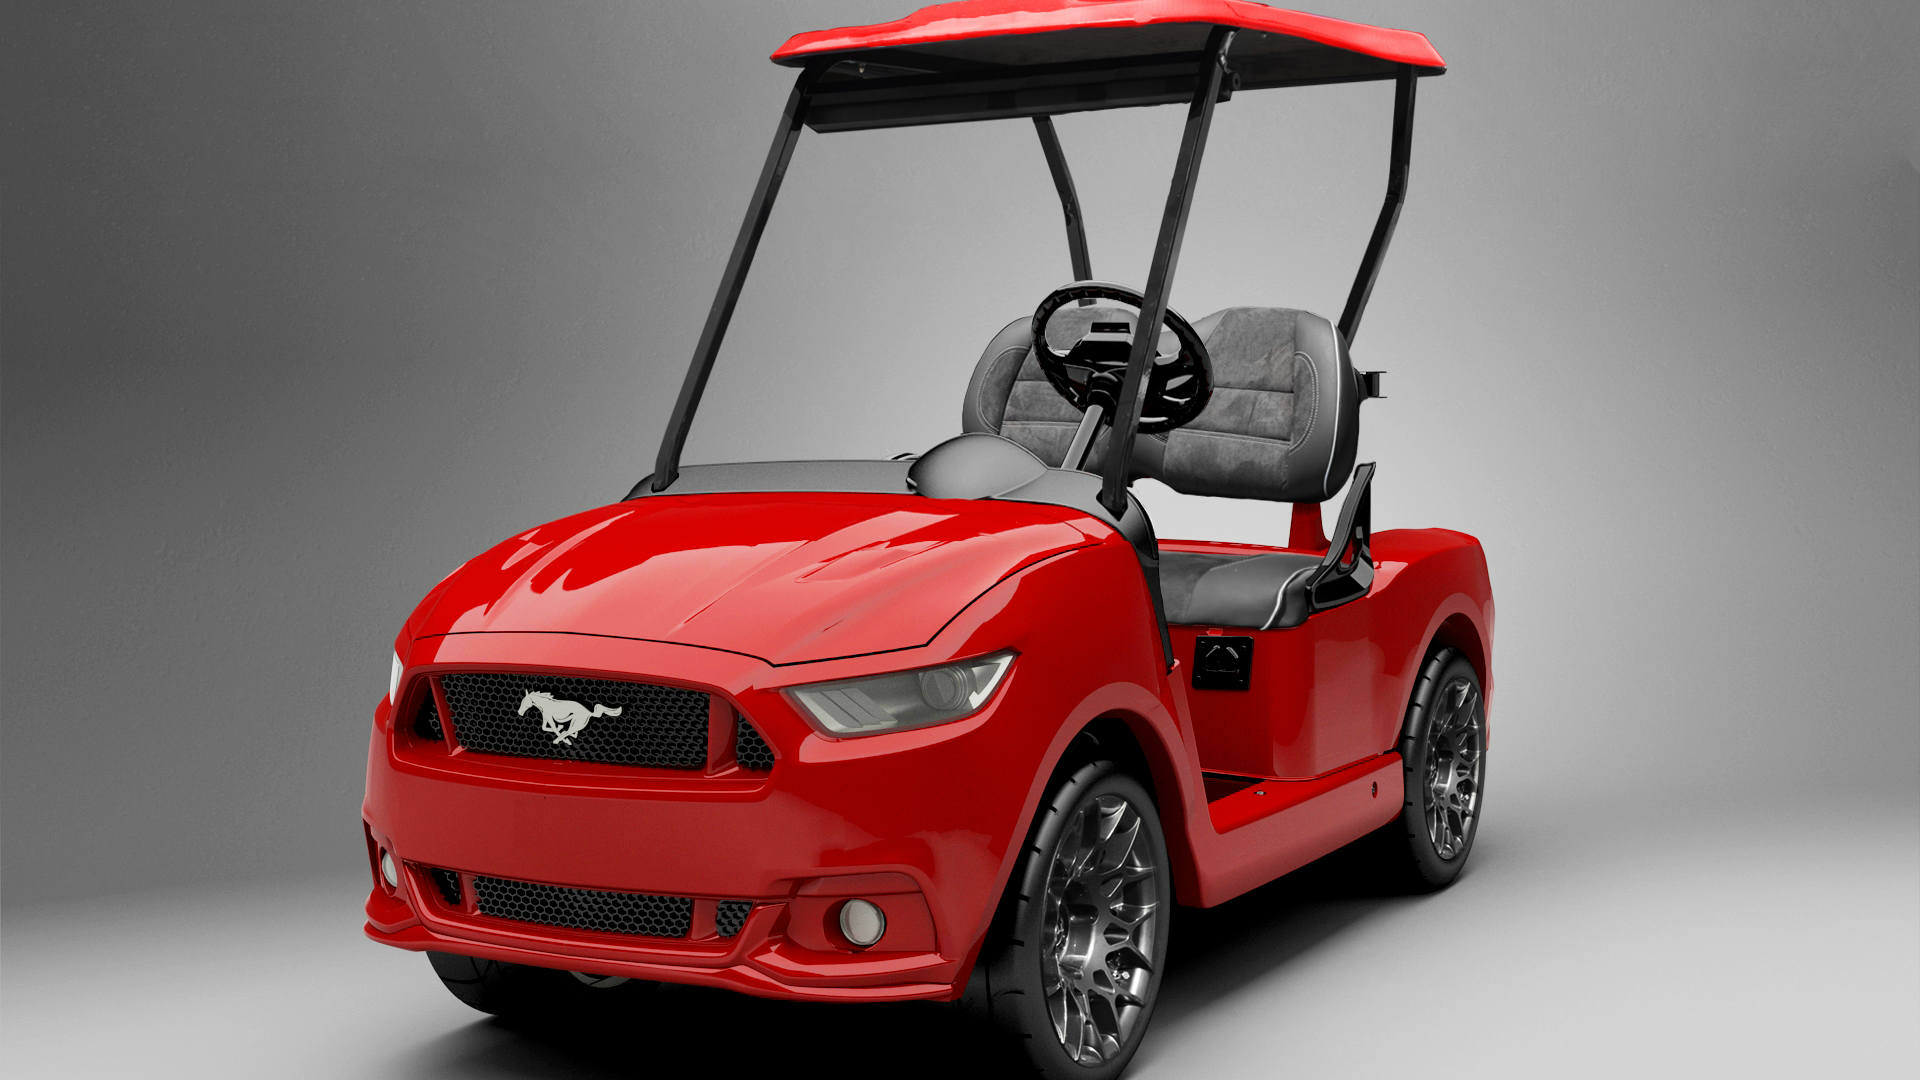 Golf Cars by CaddyShack a red golf cart